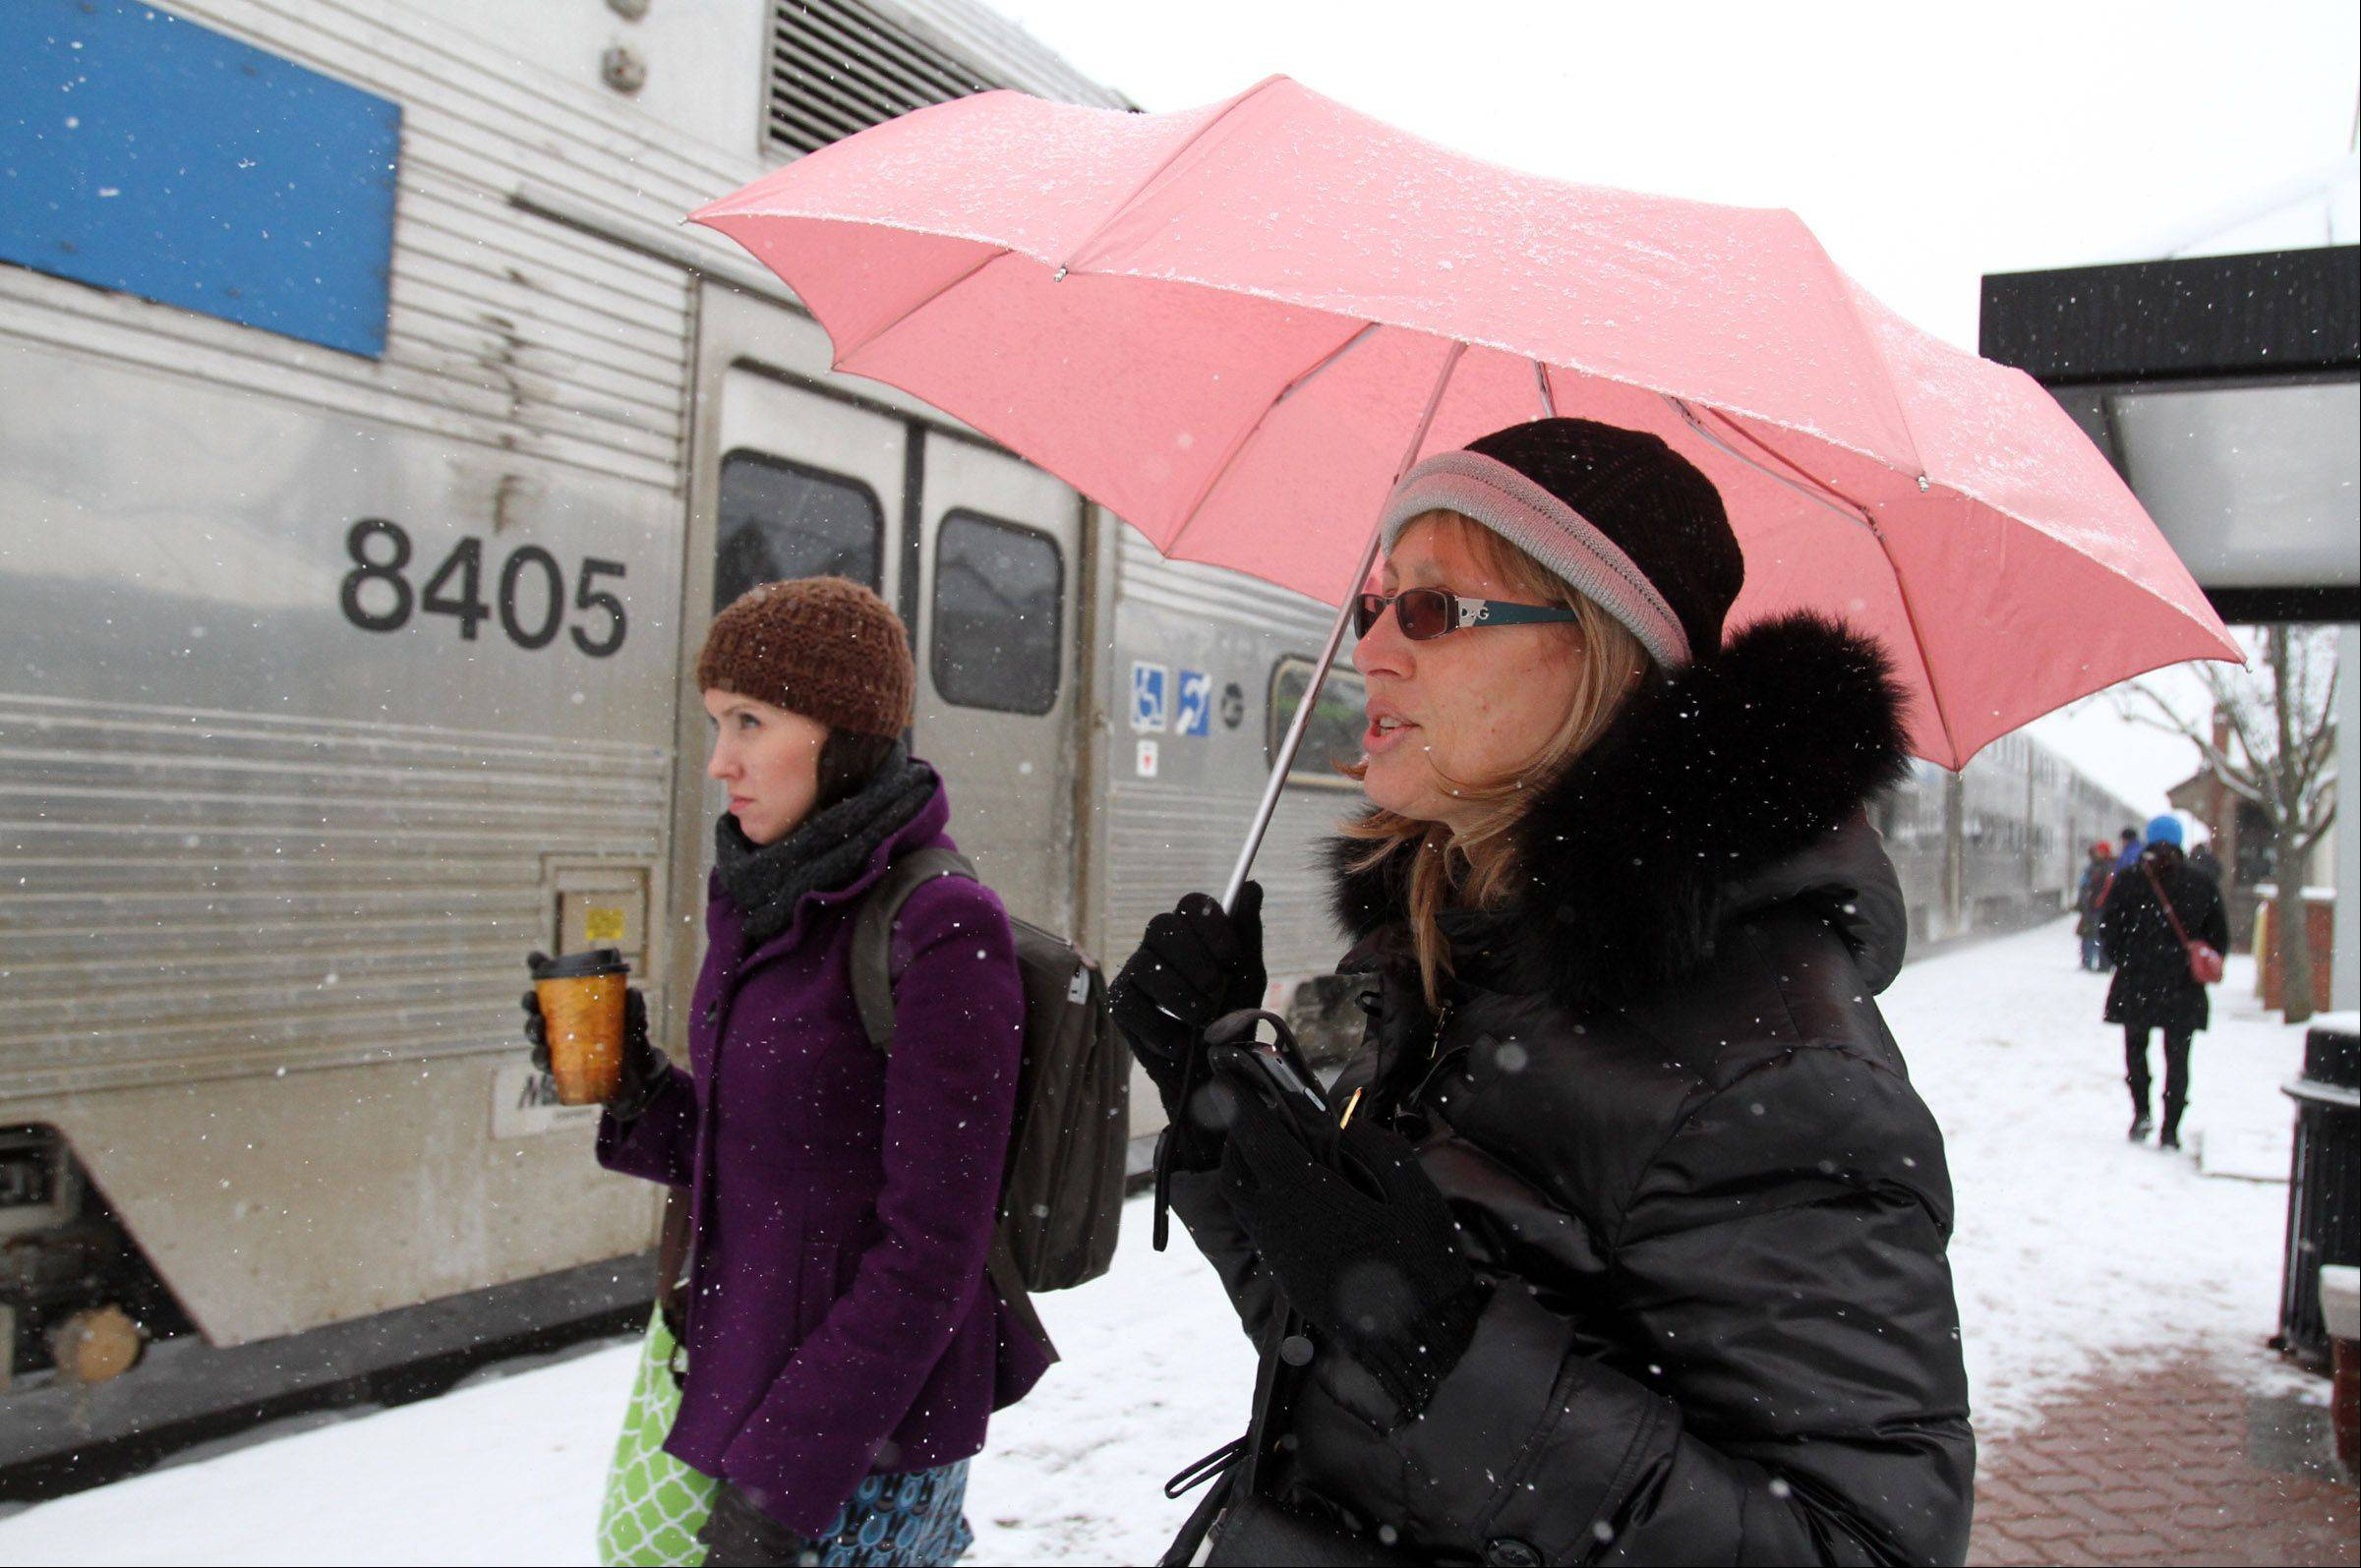 Nadia Rozenberg, of Mount Prospect, uses an umbrella to protect herself from the light snow while waiting to board a train in Mount Prospect Tuesday morning.